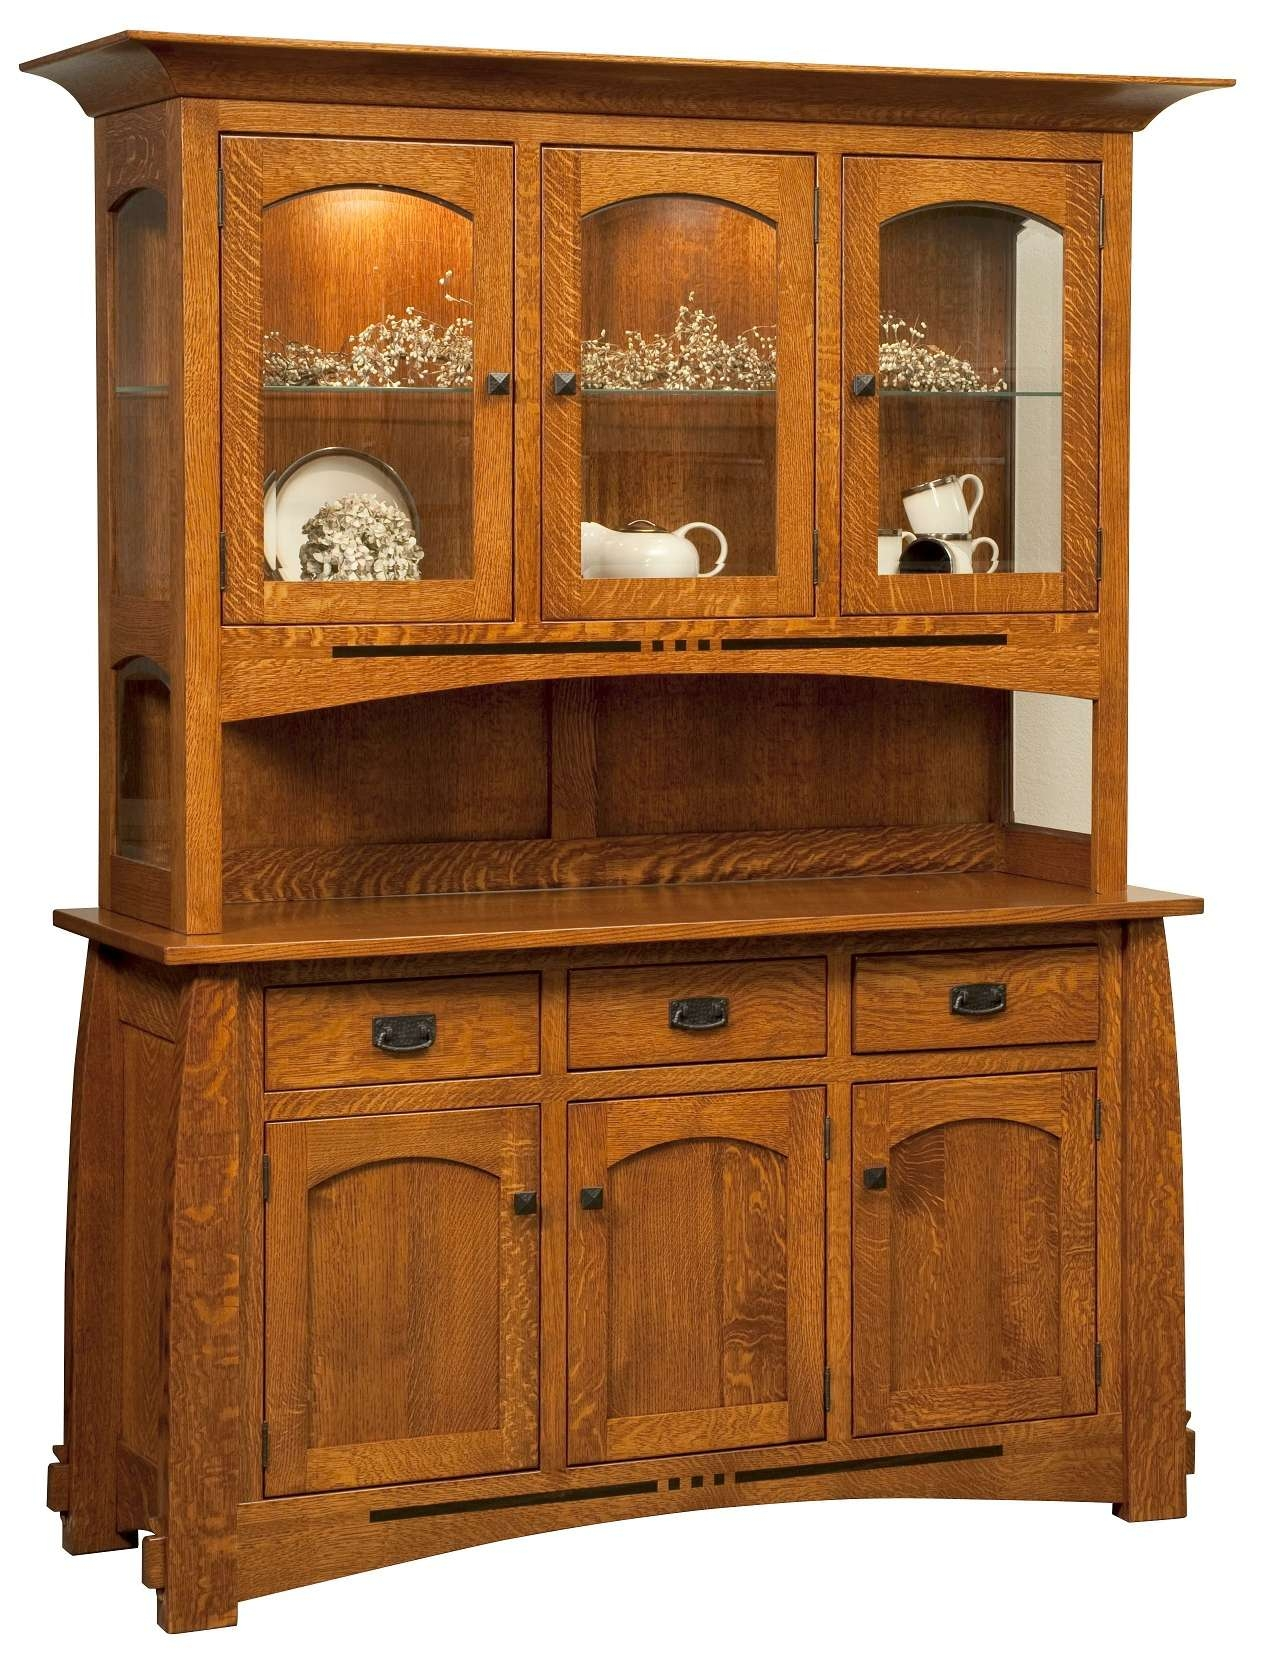 Amish Furniture – Mission Style Furniture – American Made Throughout Mission Style Sideboards (View 2 of 20)